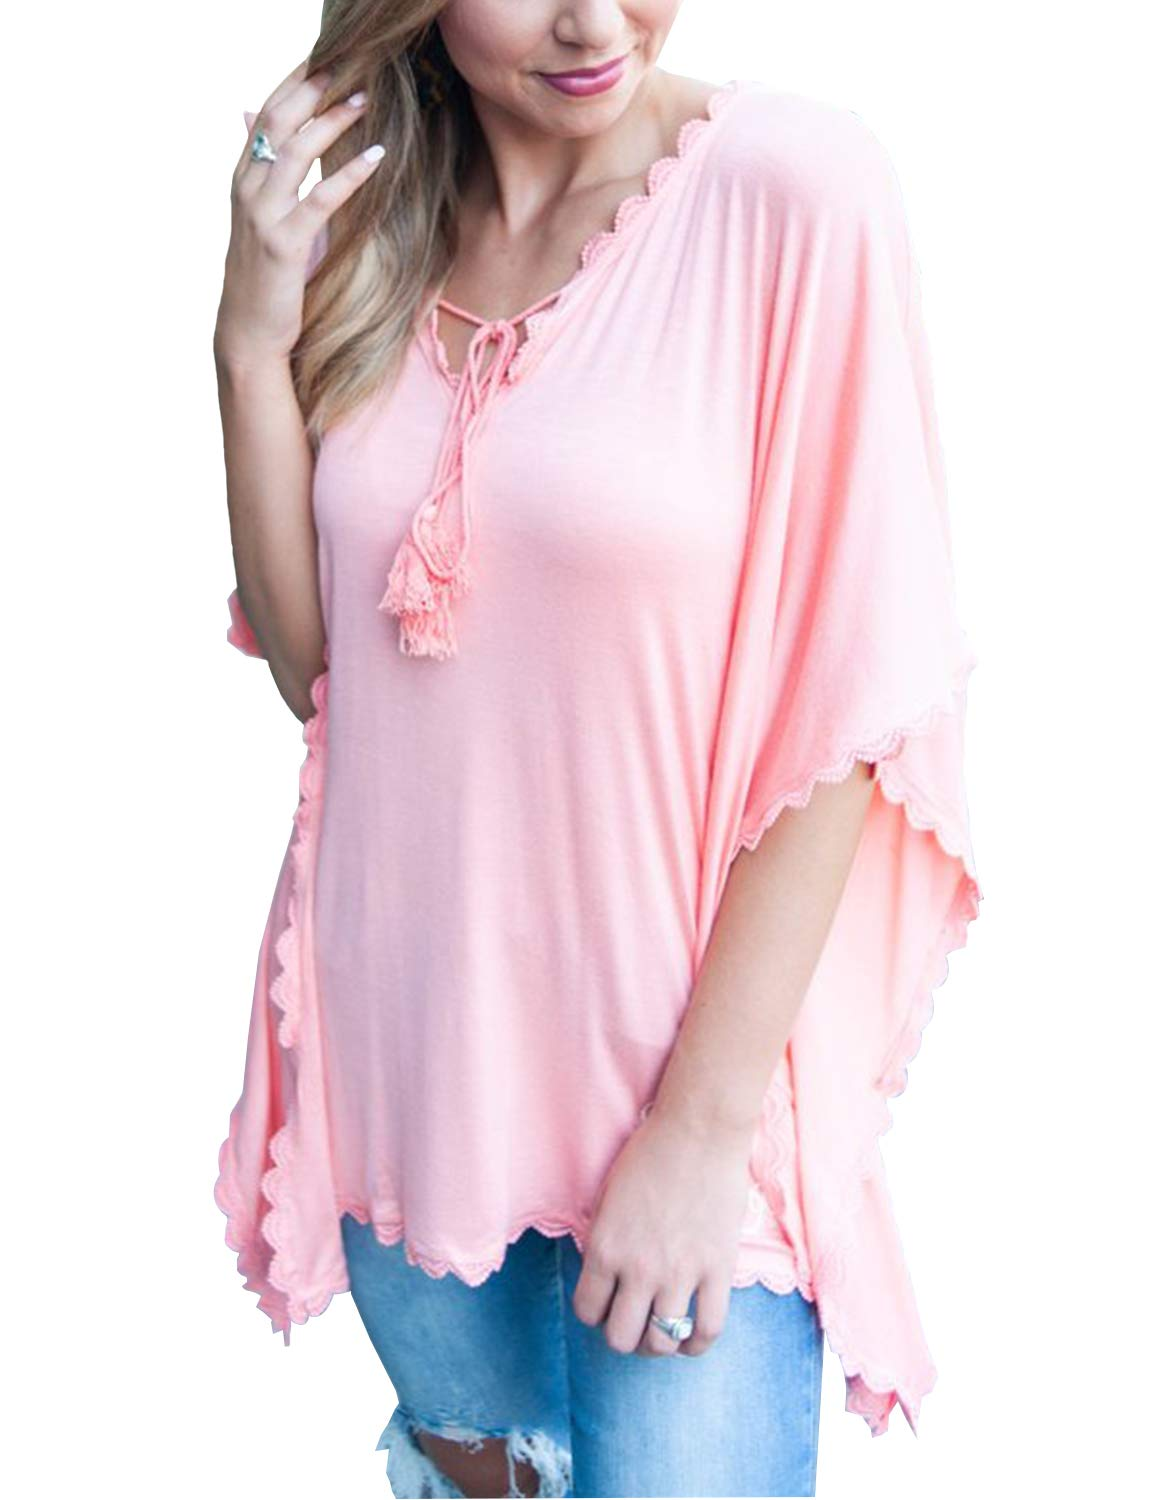 Blooming Jelly Women's Batwing Sleeve Shirt v Neck Loose High Low Top Pink